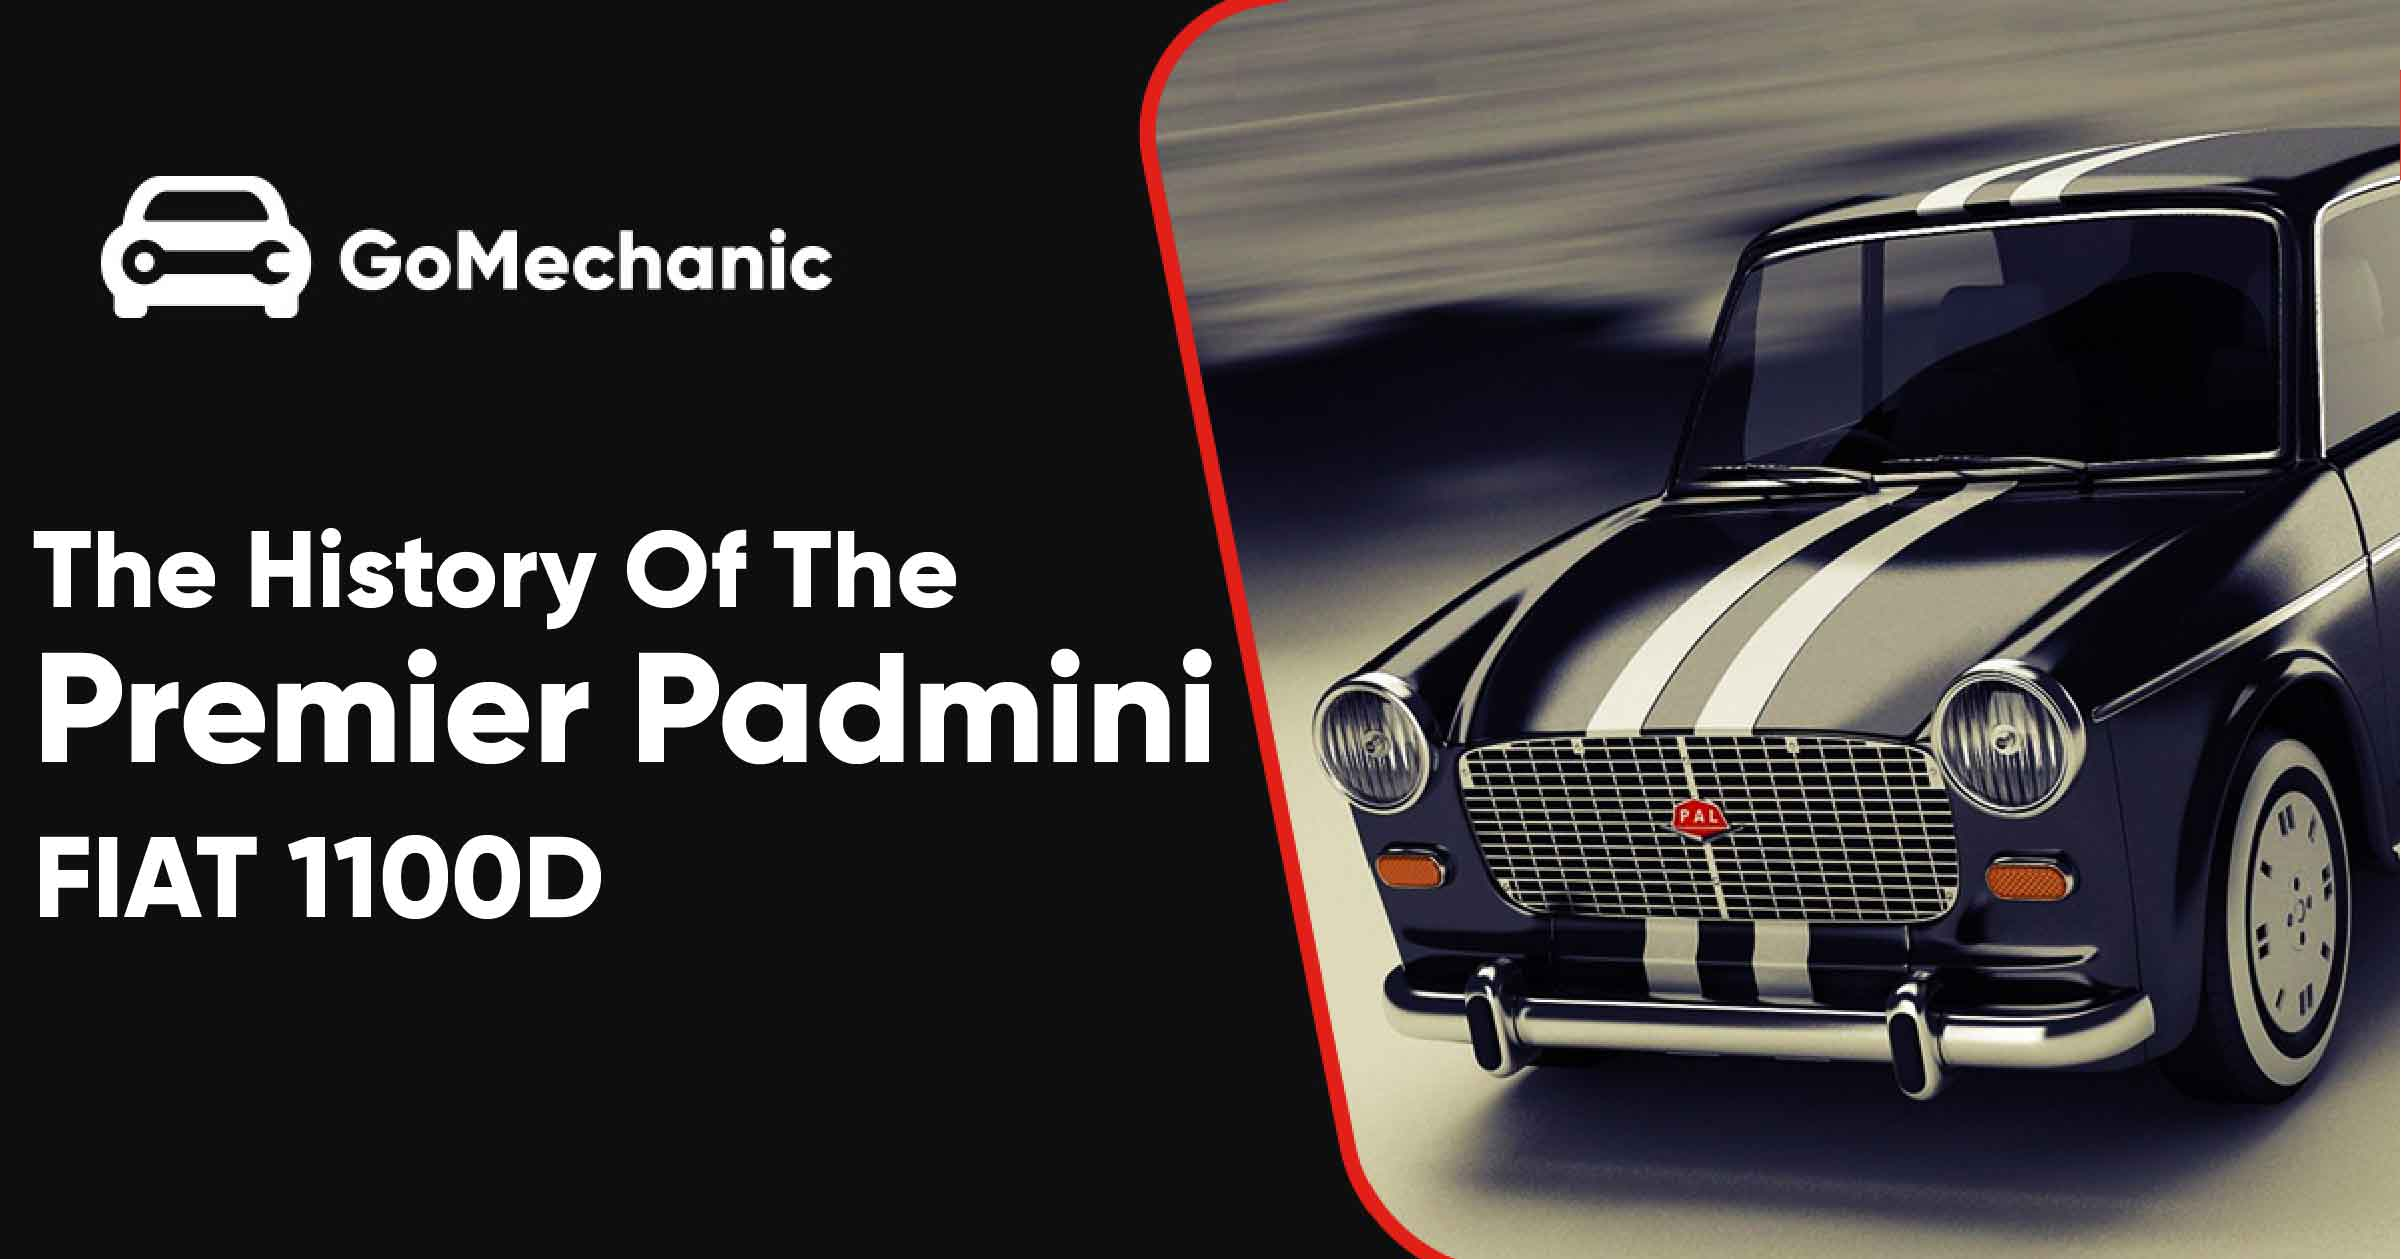 Premier Padmini Fiat 1100d India S Most Loved Family Car